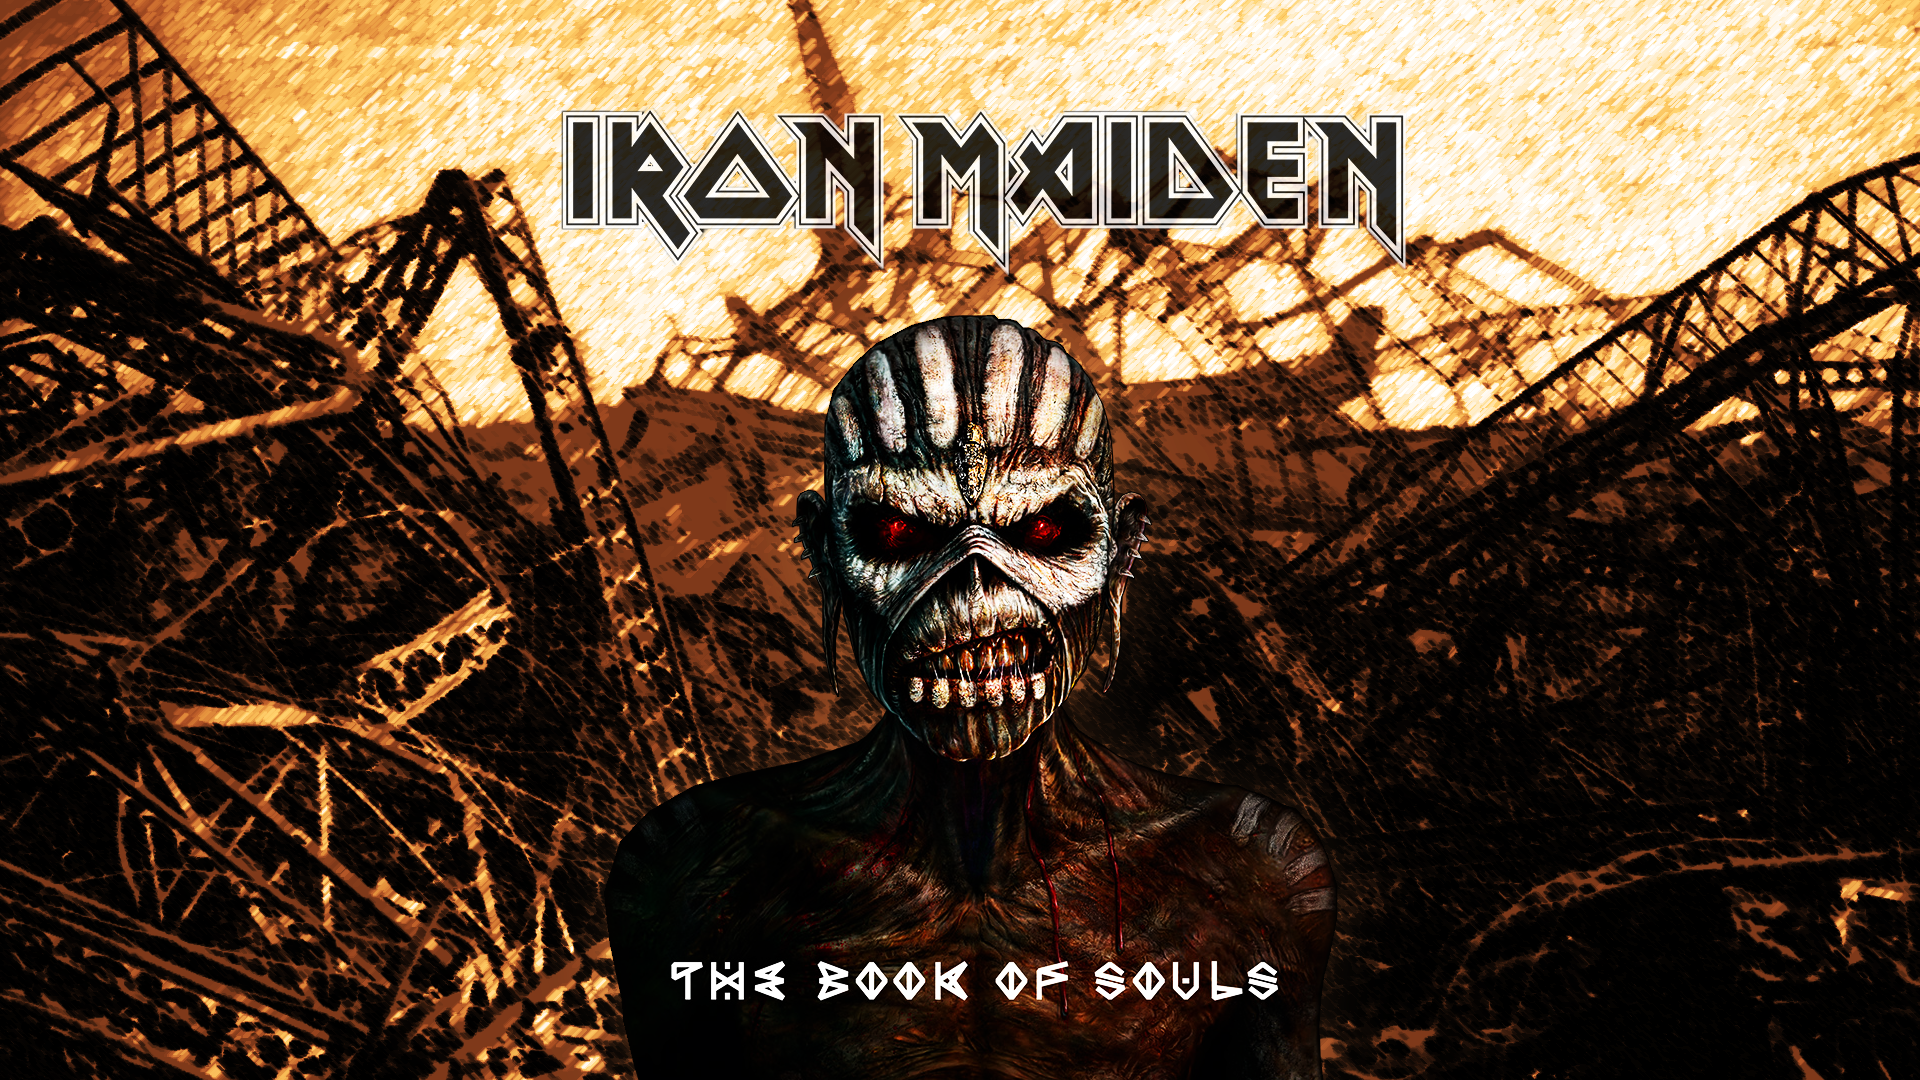 Iron Maiden The Book Of Souls R101 Wallpaper By Verxy On Deviantart